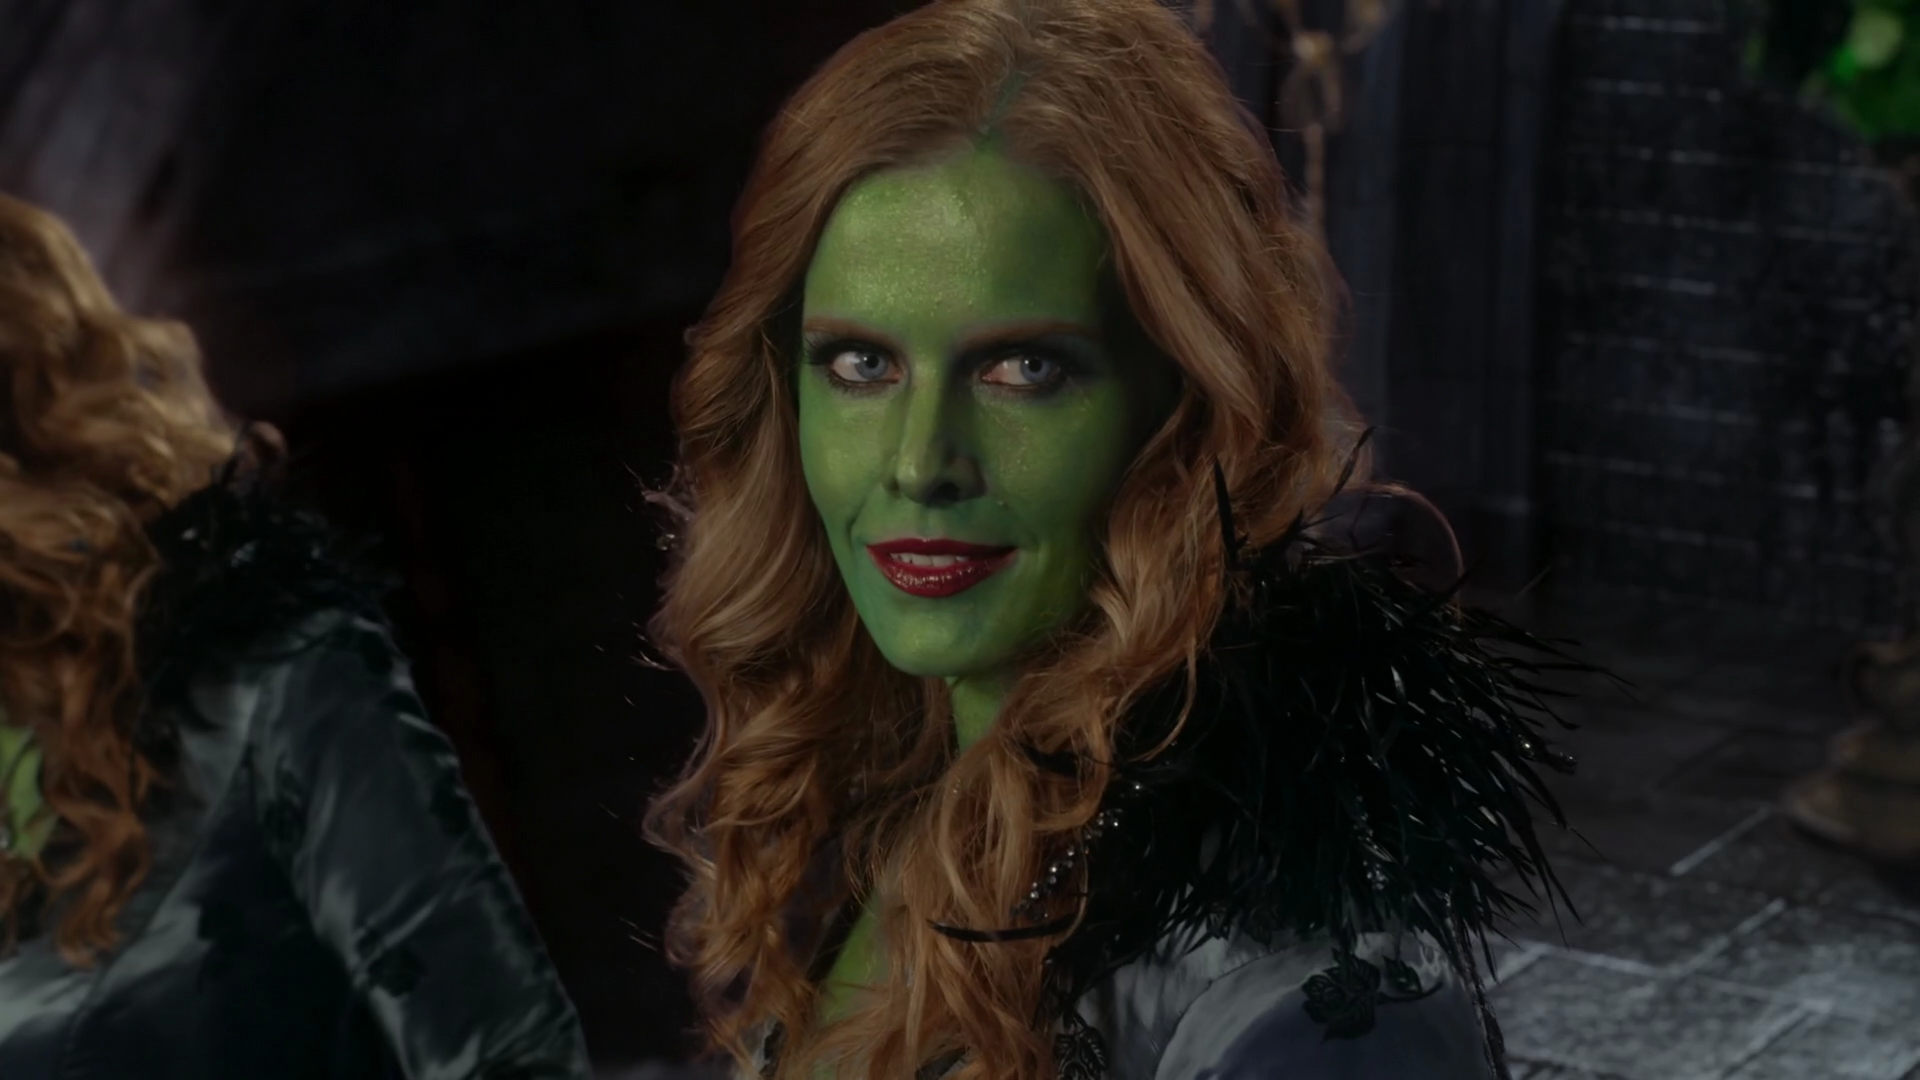 zelena the wicked witch of the west images zelena wicked witch hd